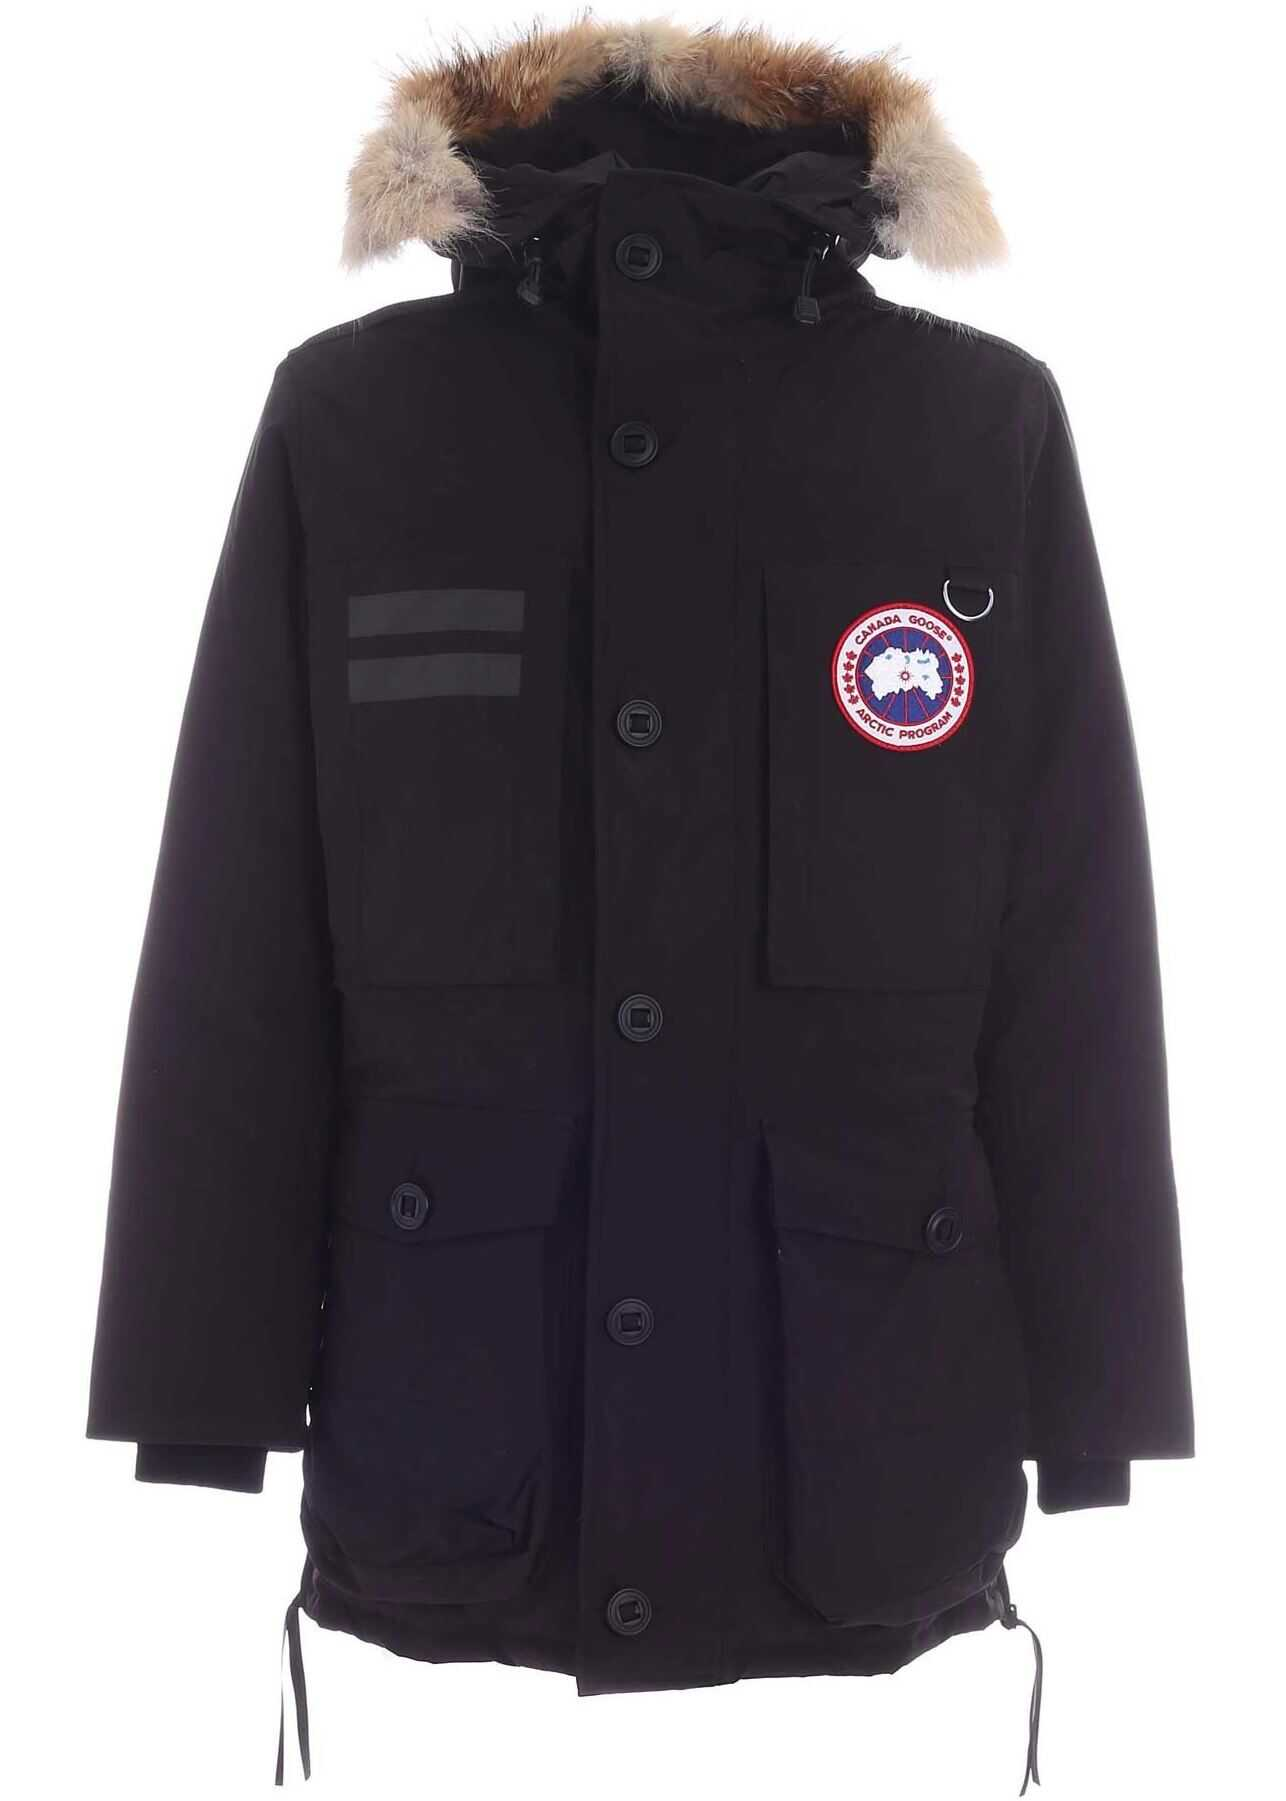 CANADA GOOSE Macculloch Parka In Black Black imagine